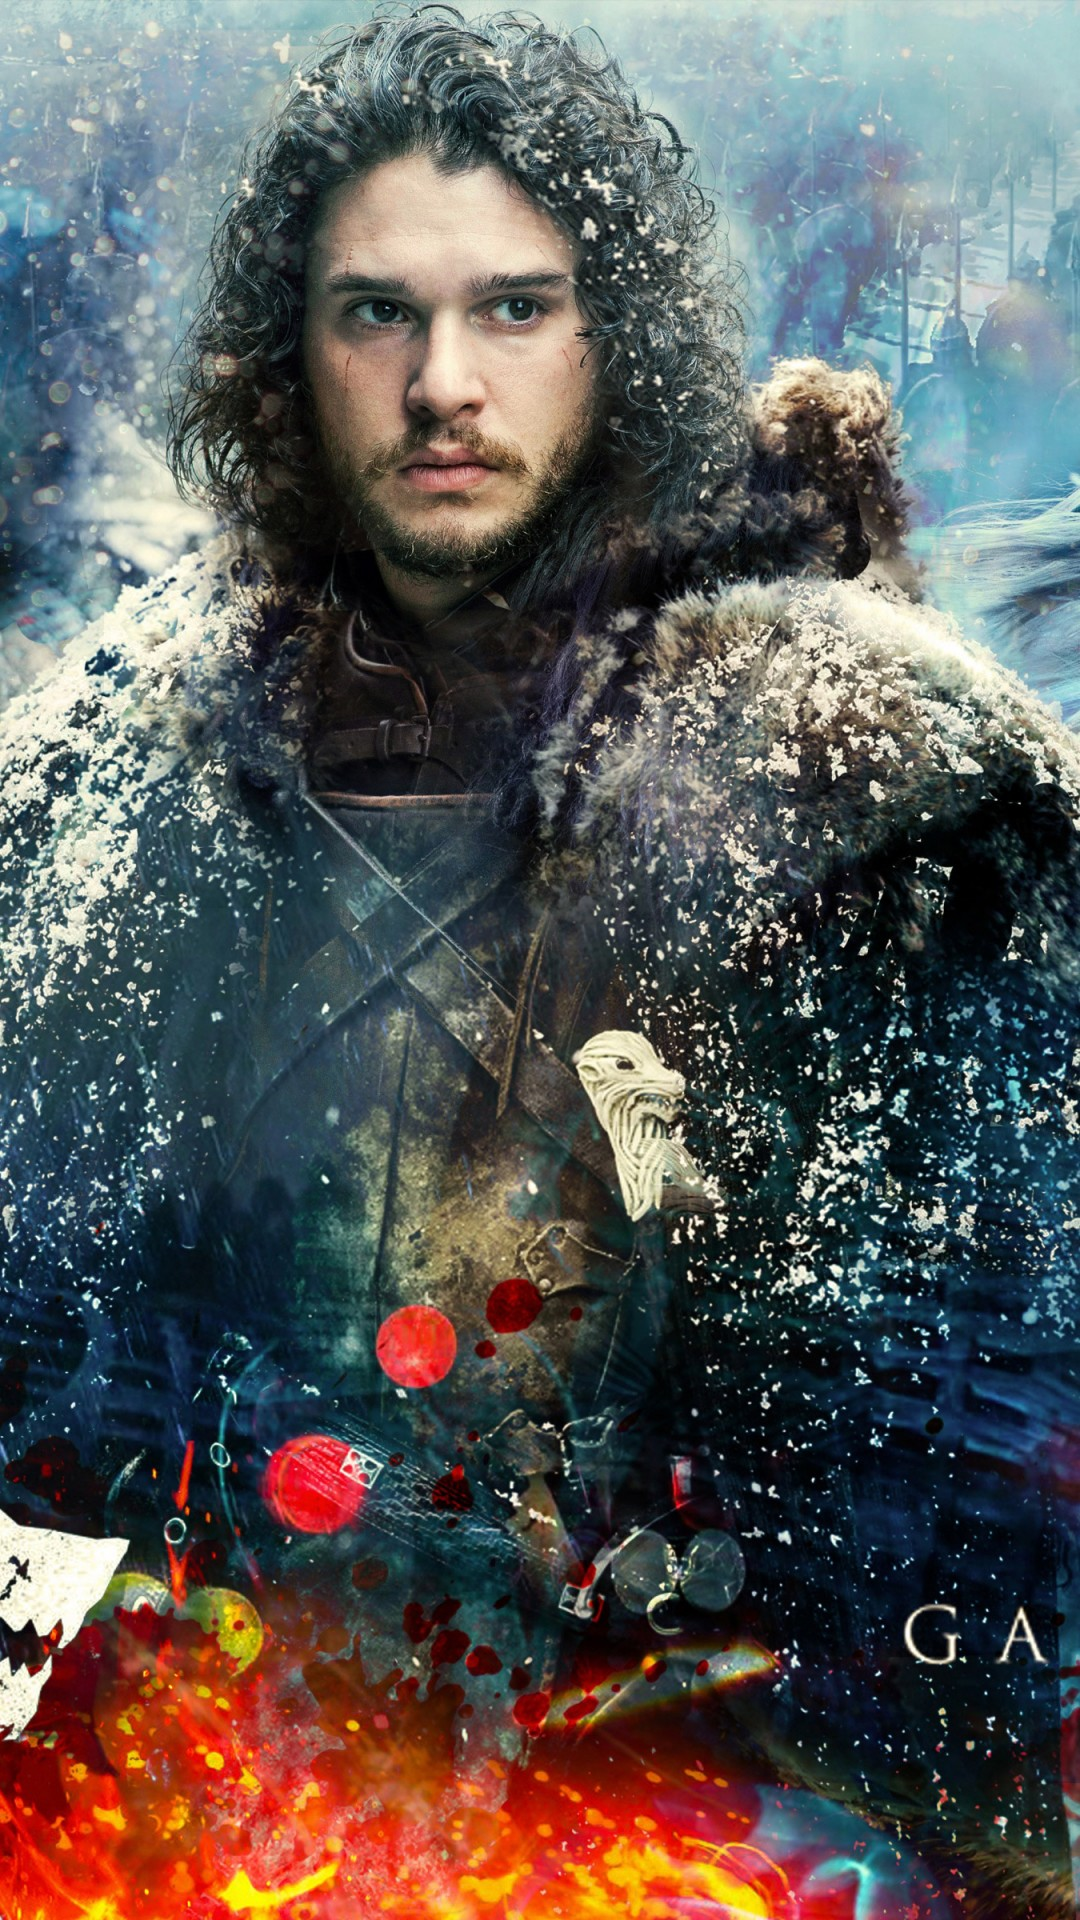 Wallpaper Game Of Thrones Season 7 Jon Snow Daenerys